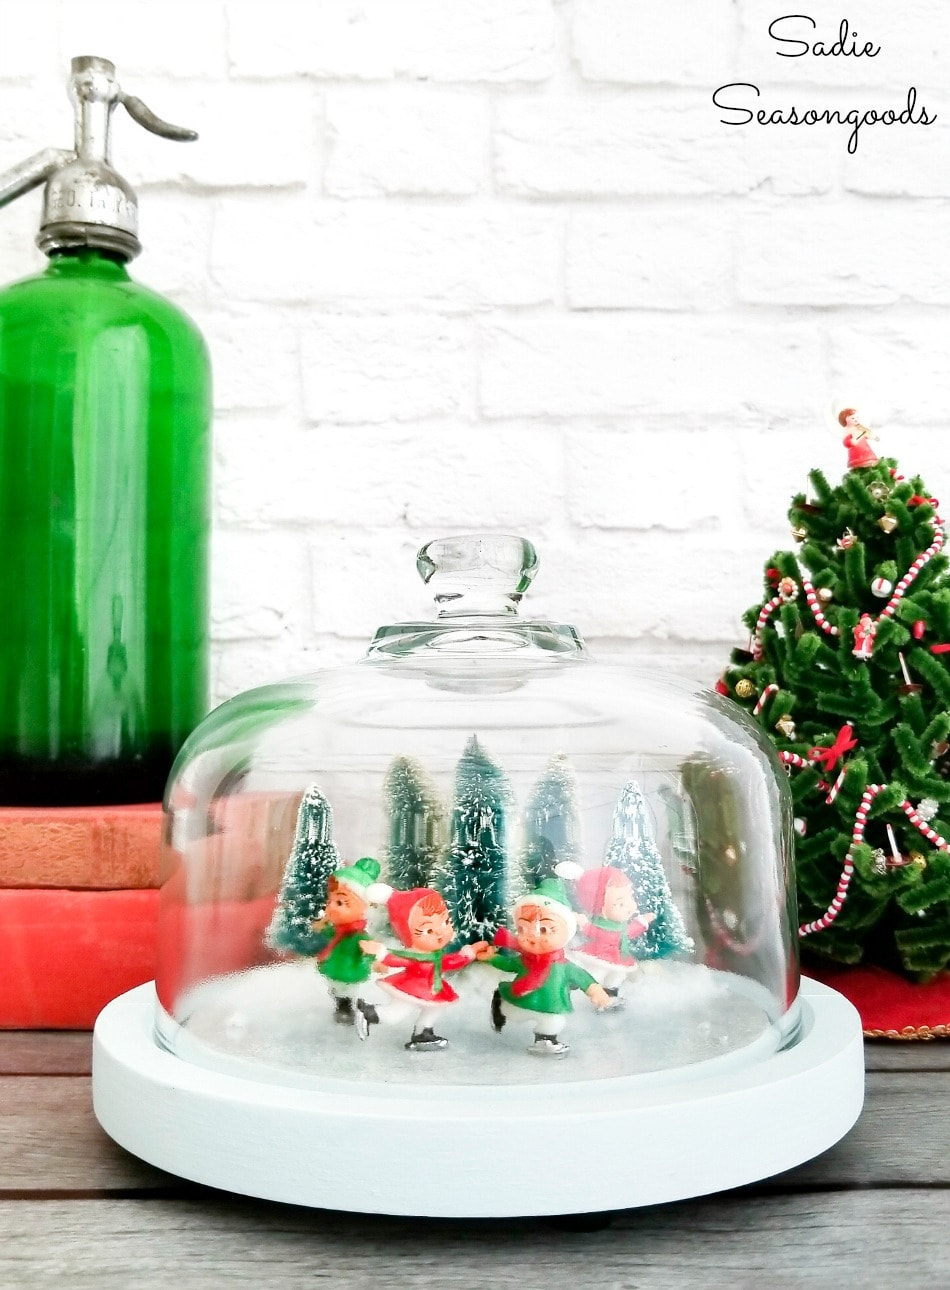 Upcycling a cheese dome to hold a Christmas winter scene